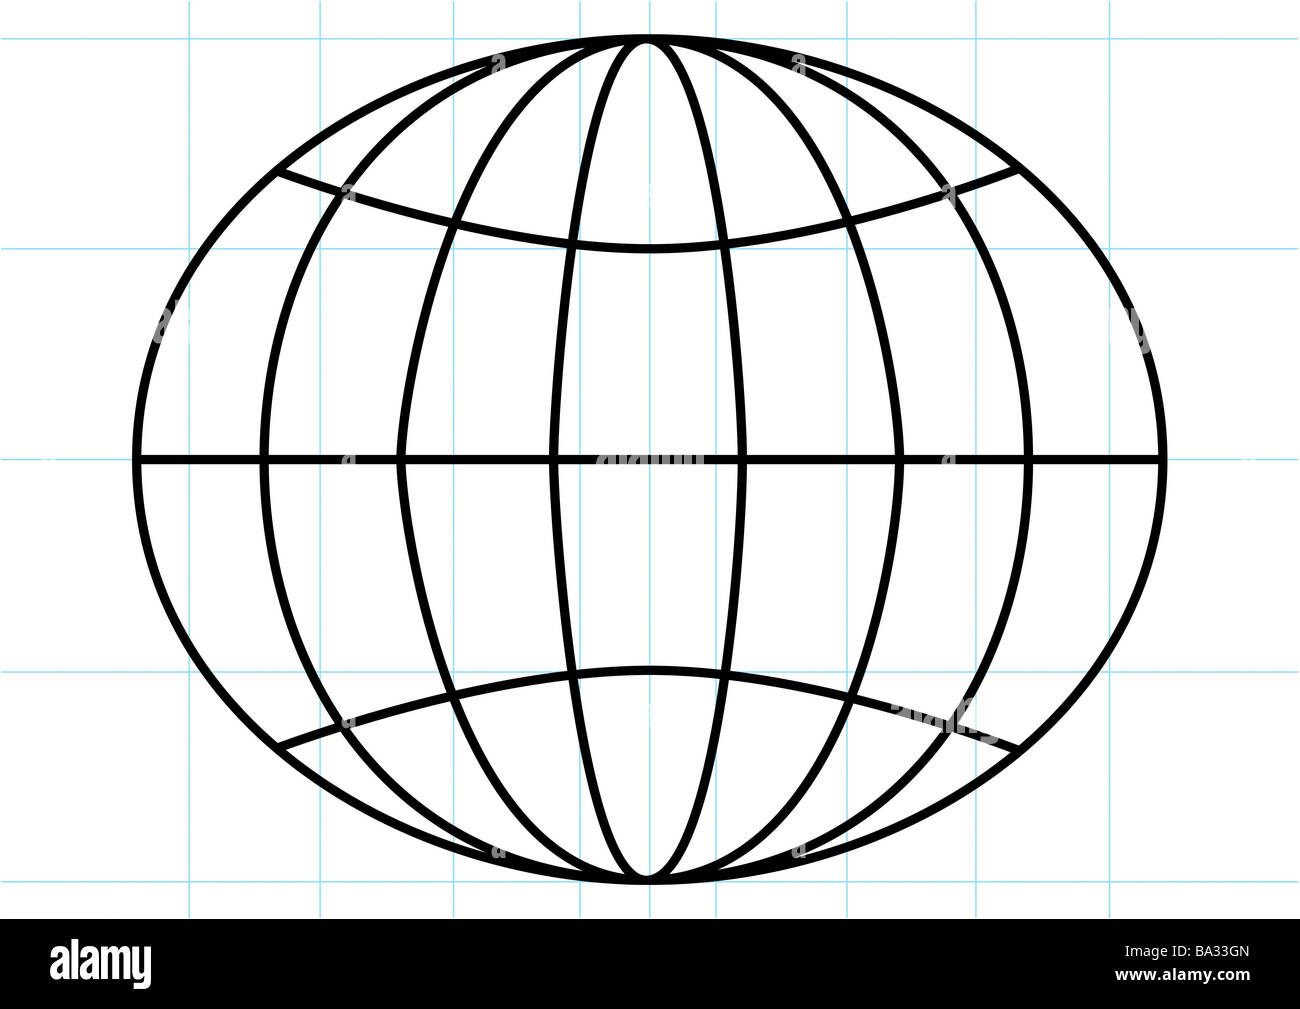 lines of latitude stock photos lines of latitude stock images alamy Numbered Grid Lines screens blue earth representation degrees of latitude longitudes line net graphics lines planet world globe